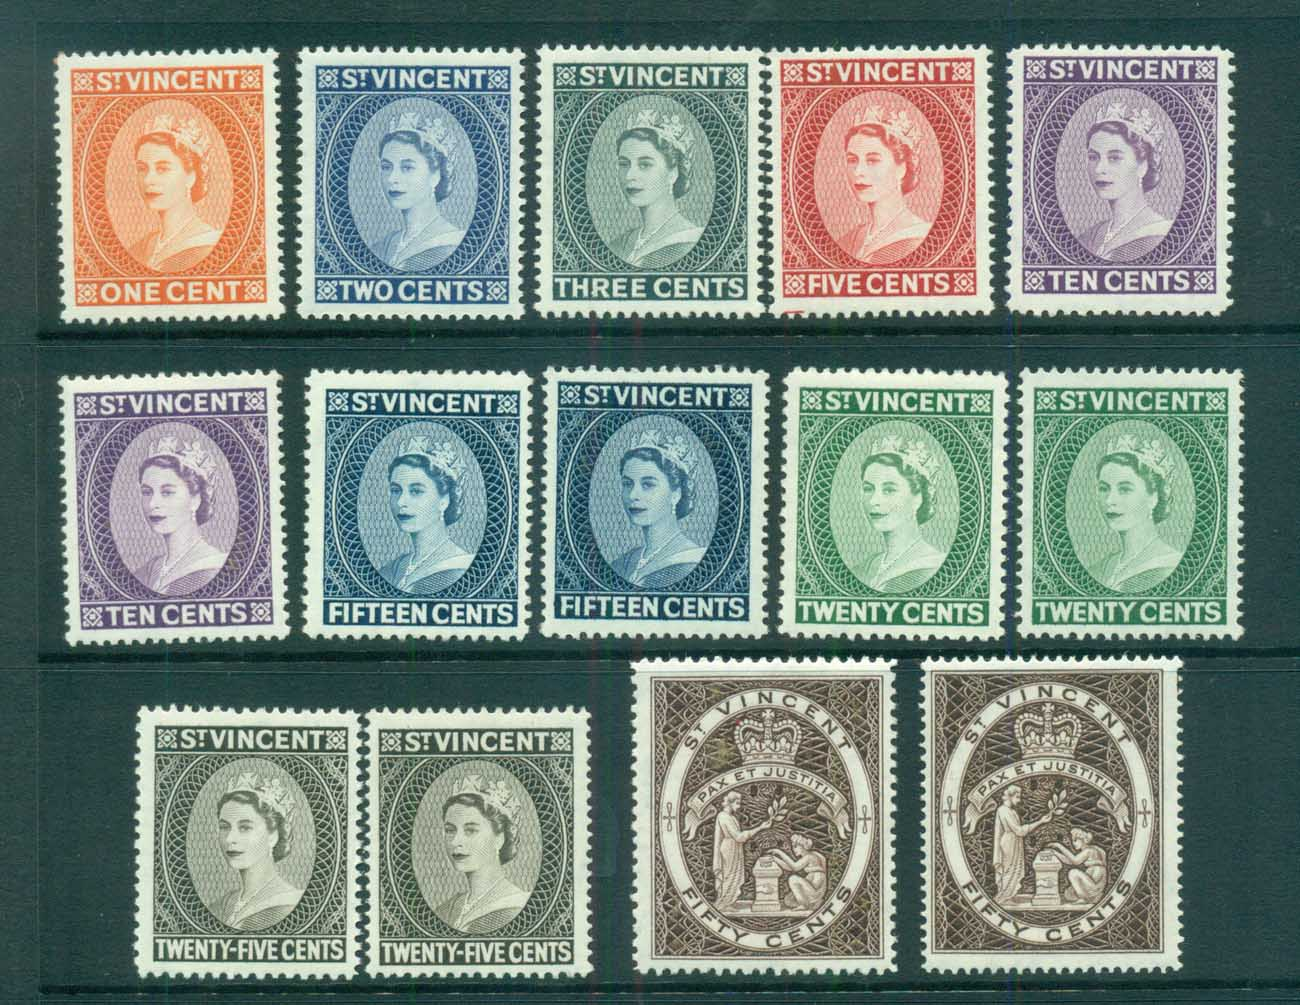 St Vincent 1964-65 QEII Defins Wmk Crown CA All Perfs MLH lot72911